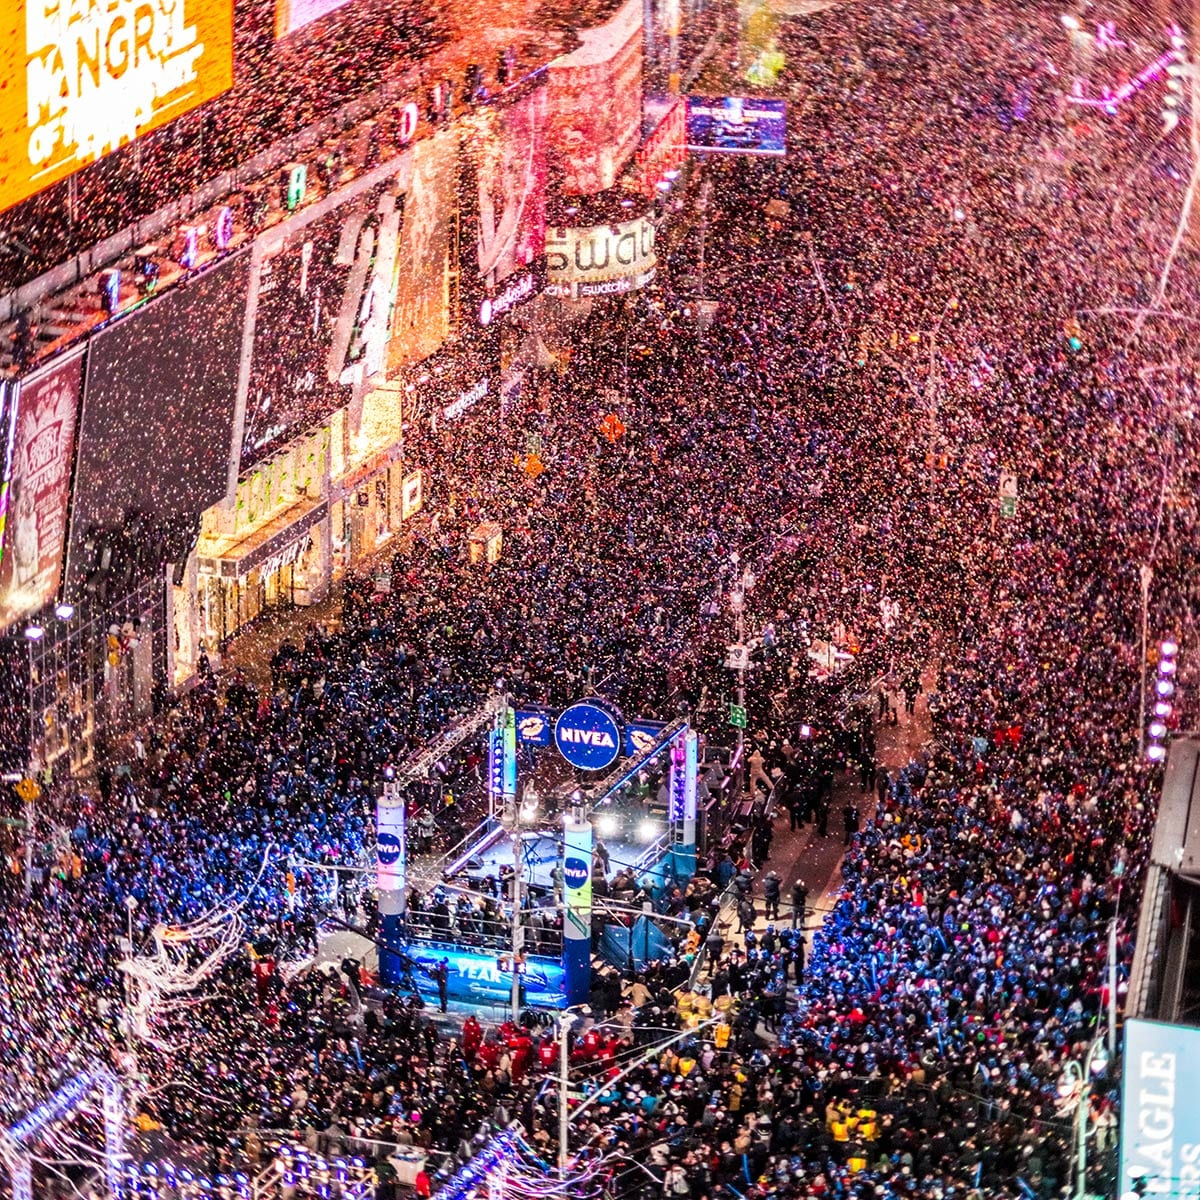 Insider's Guide to New Year's Eve in Times Square